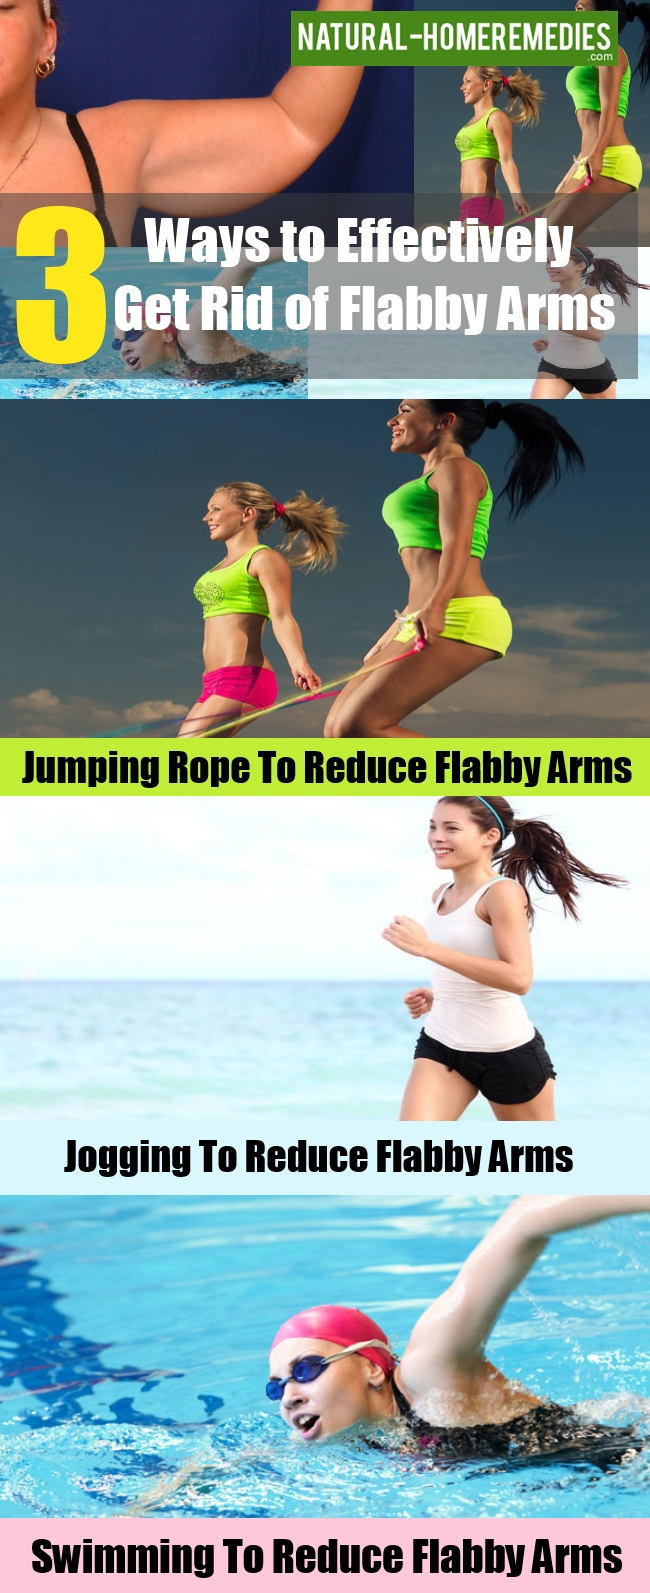 Ways to Effectively Get Rid of Flabby Arms